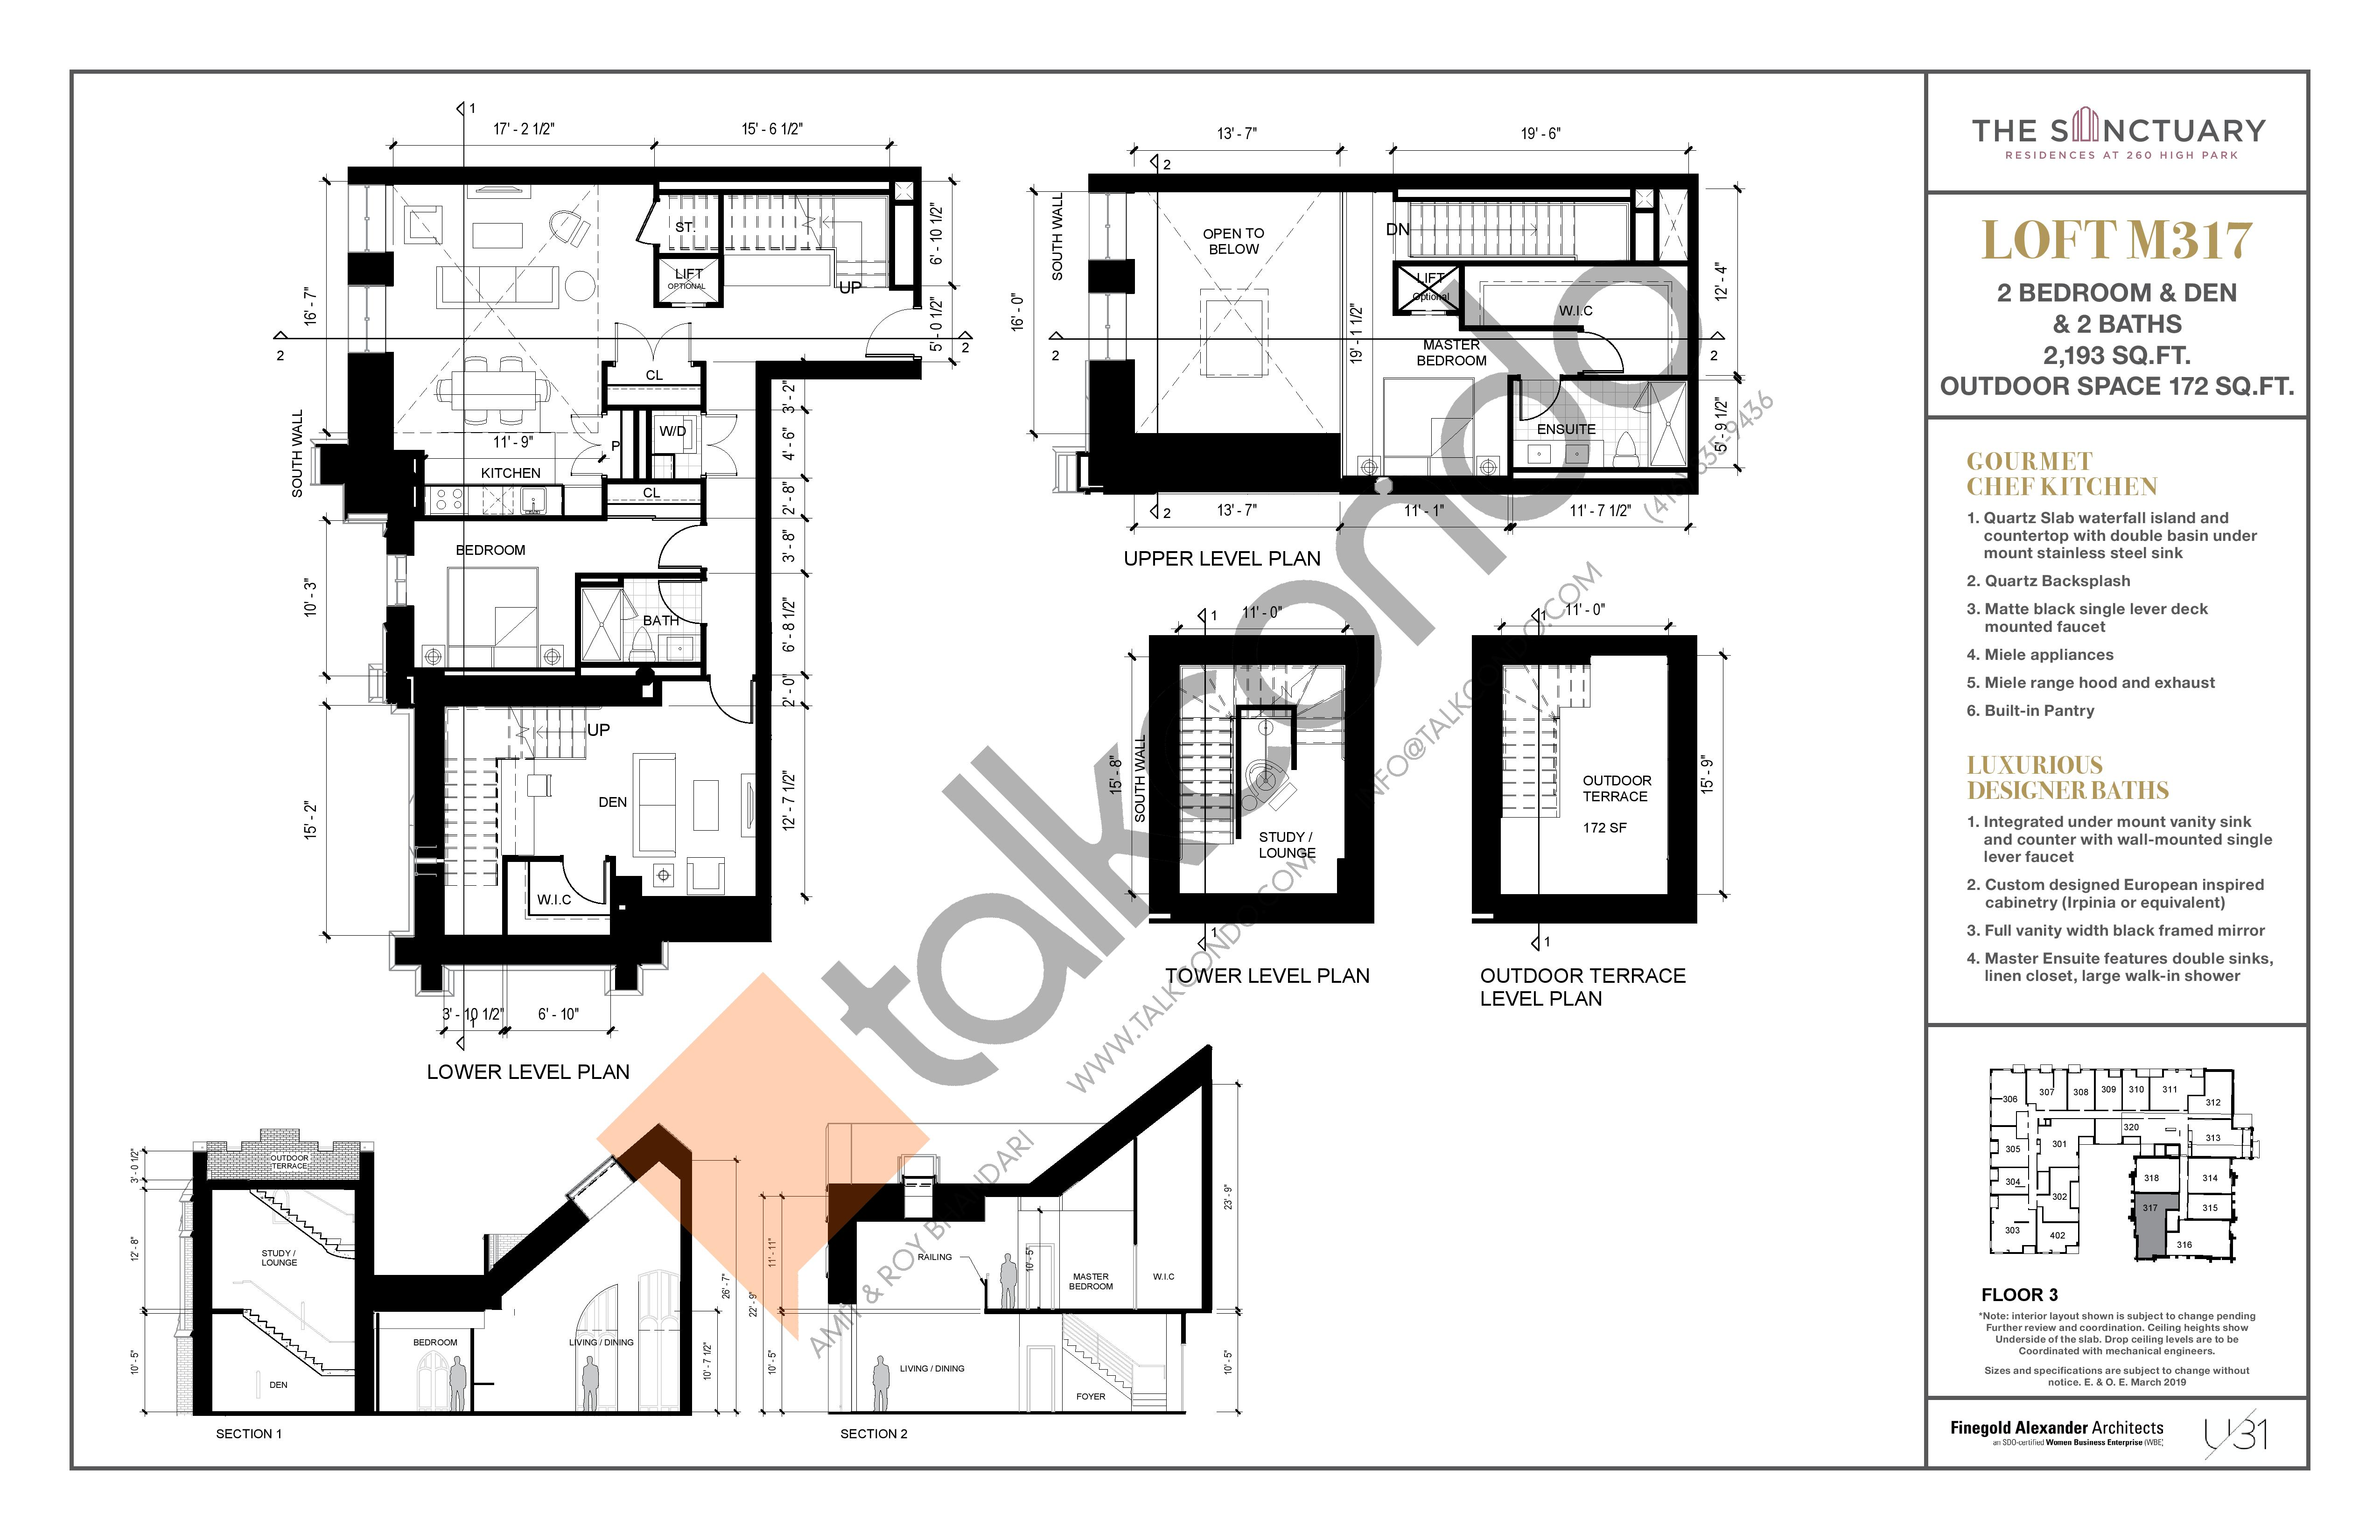 Loft M317 Floor Plan at 260 High Park - 2193 sq.ft